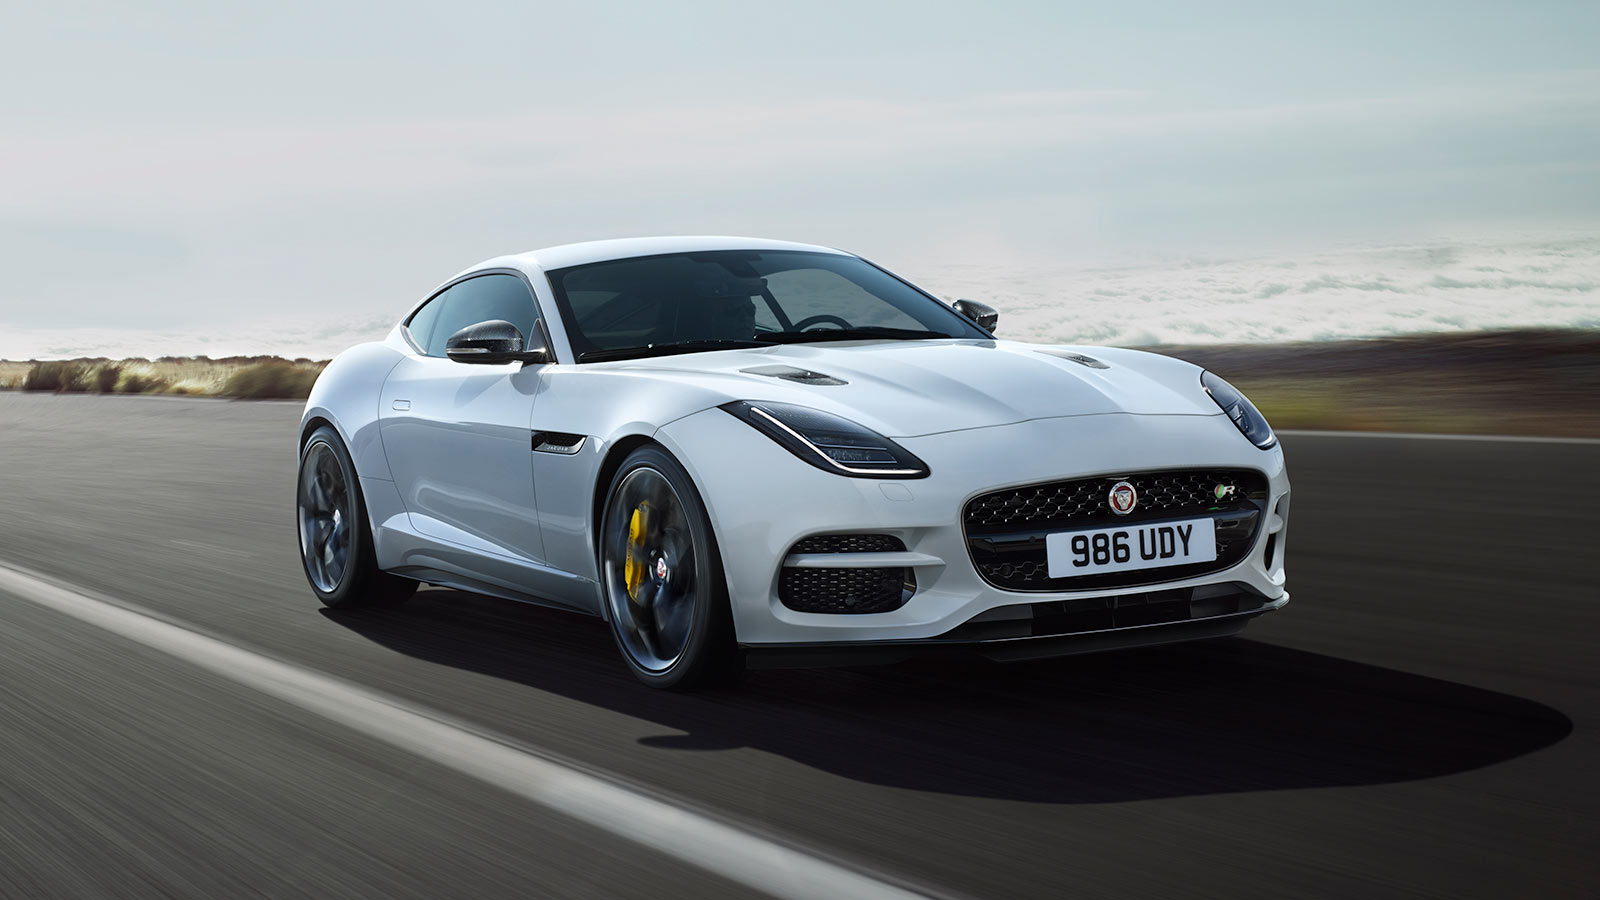 Jaguar F-TYPE 3.0 [380] Supercharged V6 R-Dynamic Automatic 2 door Coupe